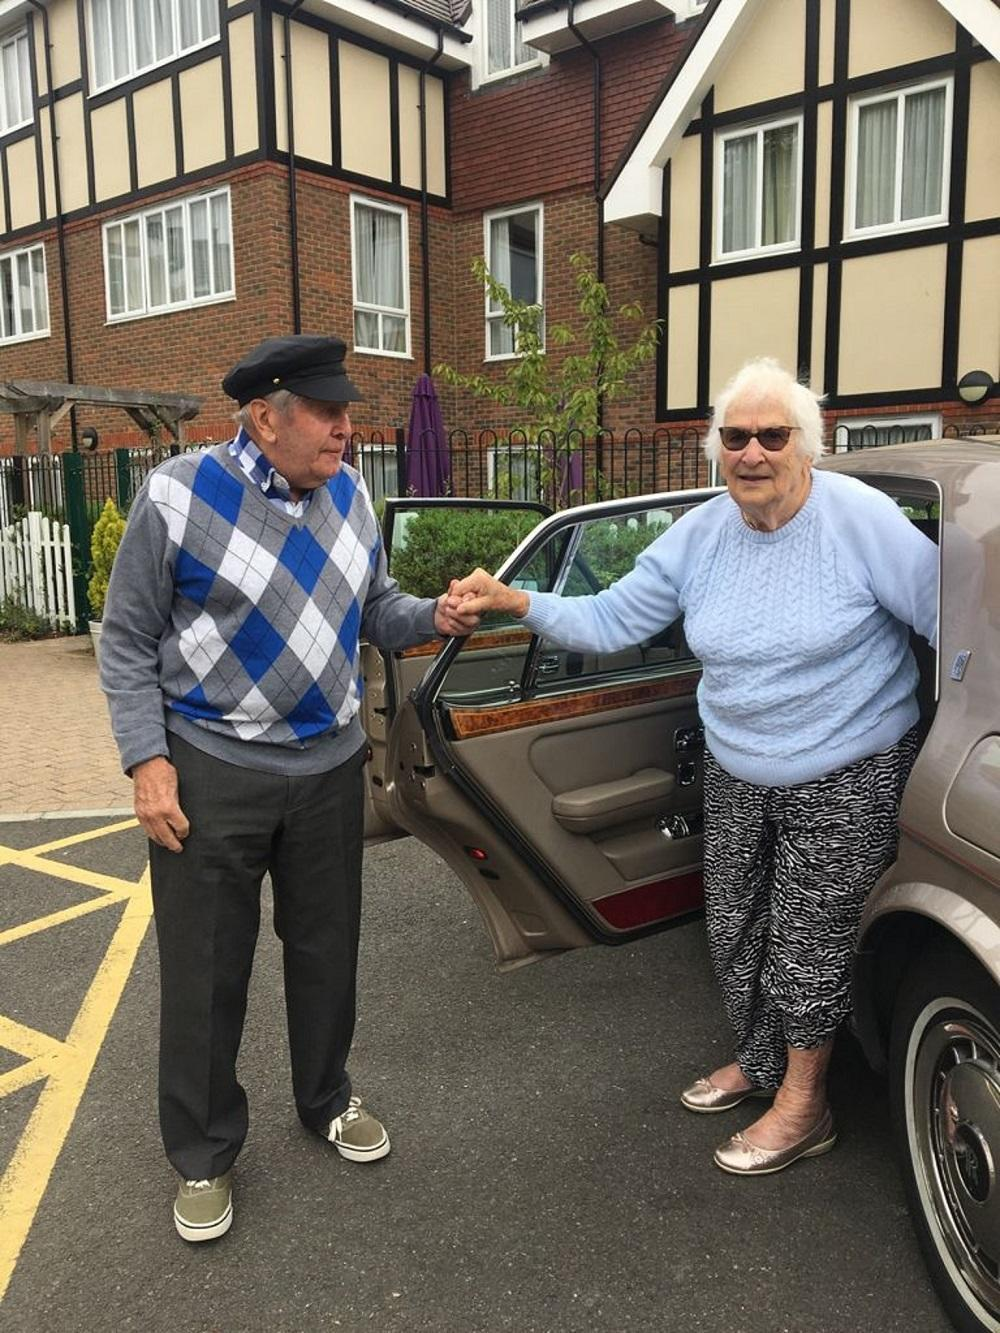 Alec Goy helping fellow resident Eve out of the Rolls Royce